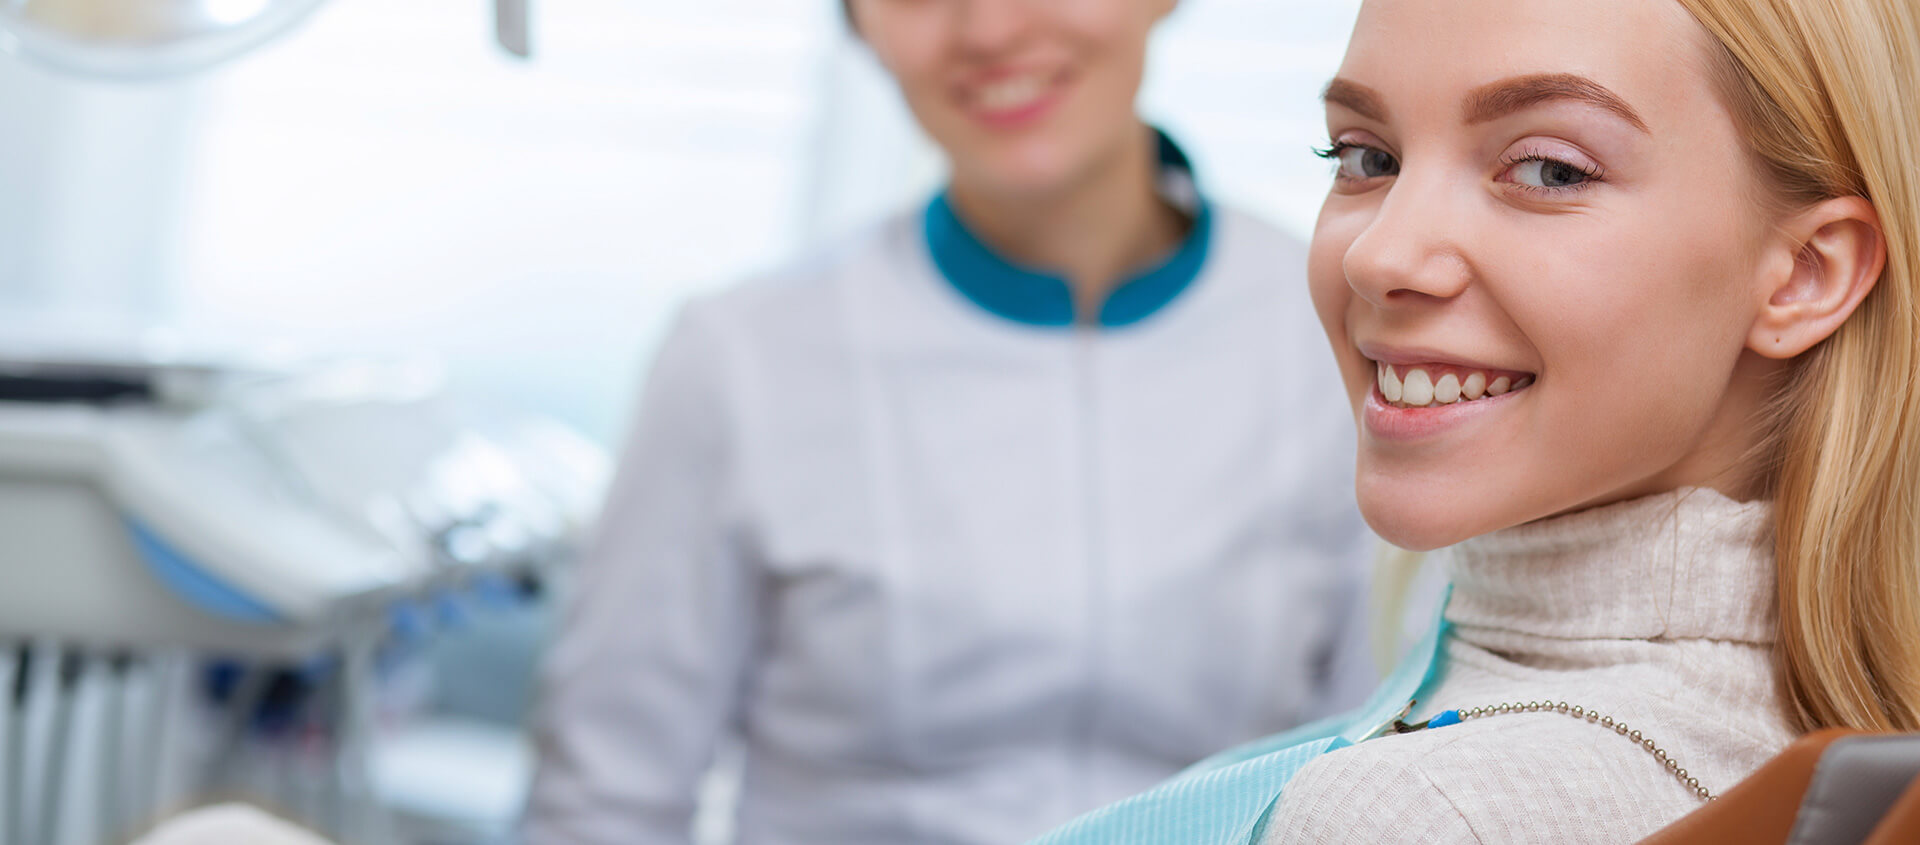 Speak to a quality dental provider in Georgetown about porcelain veneers